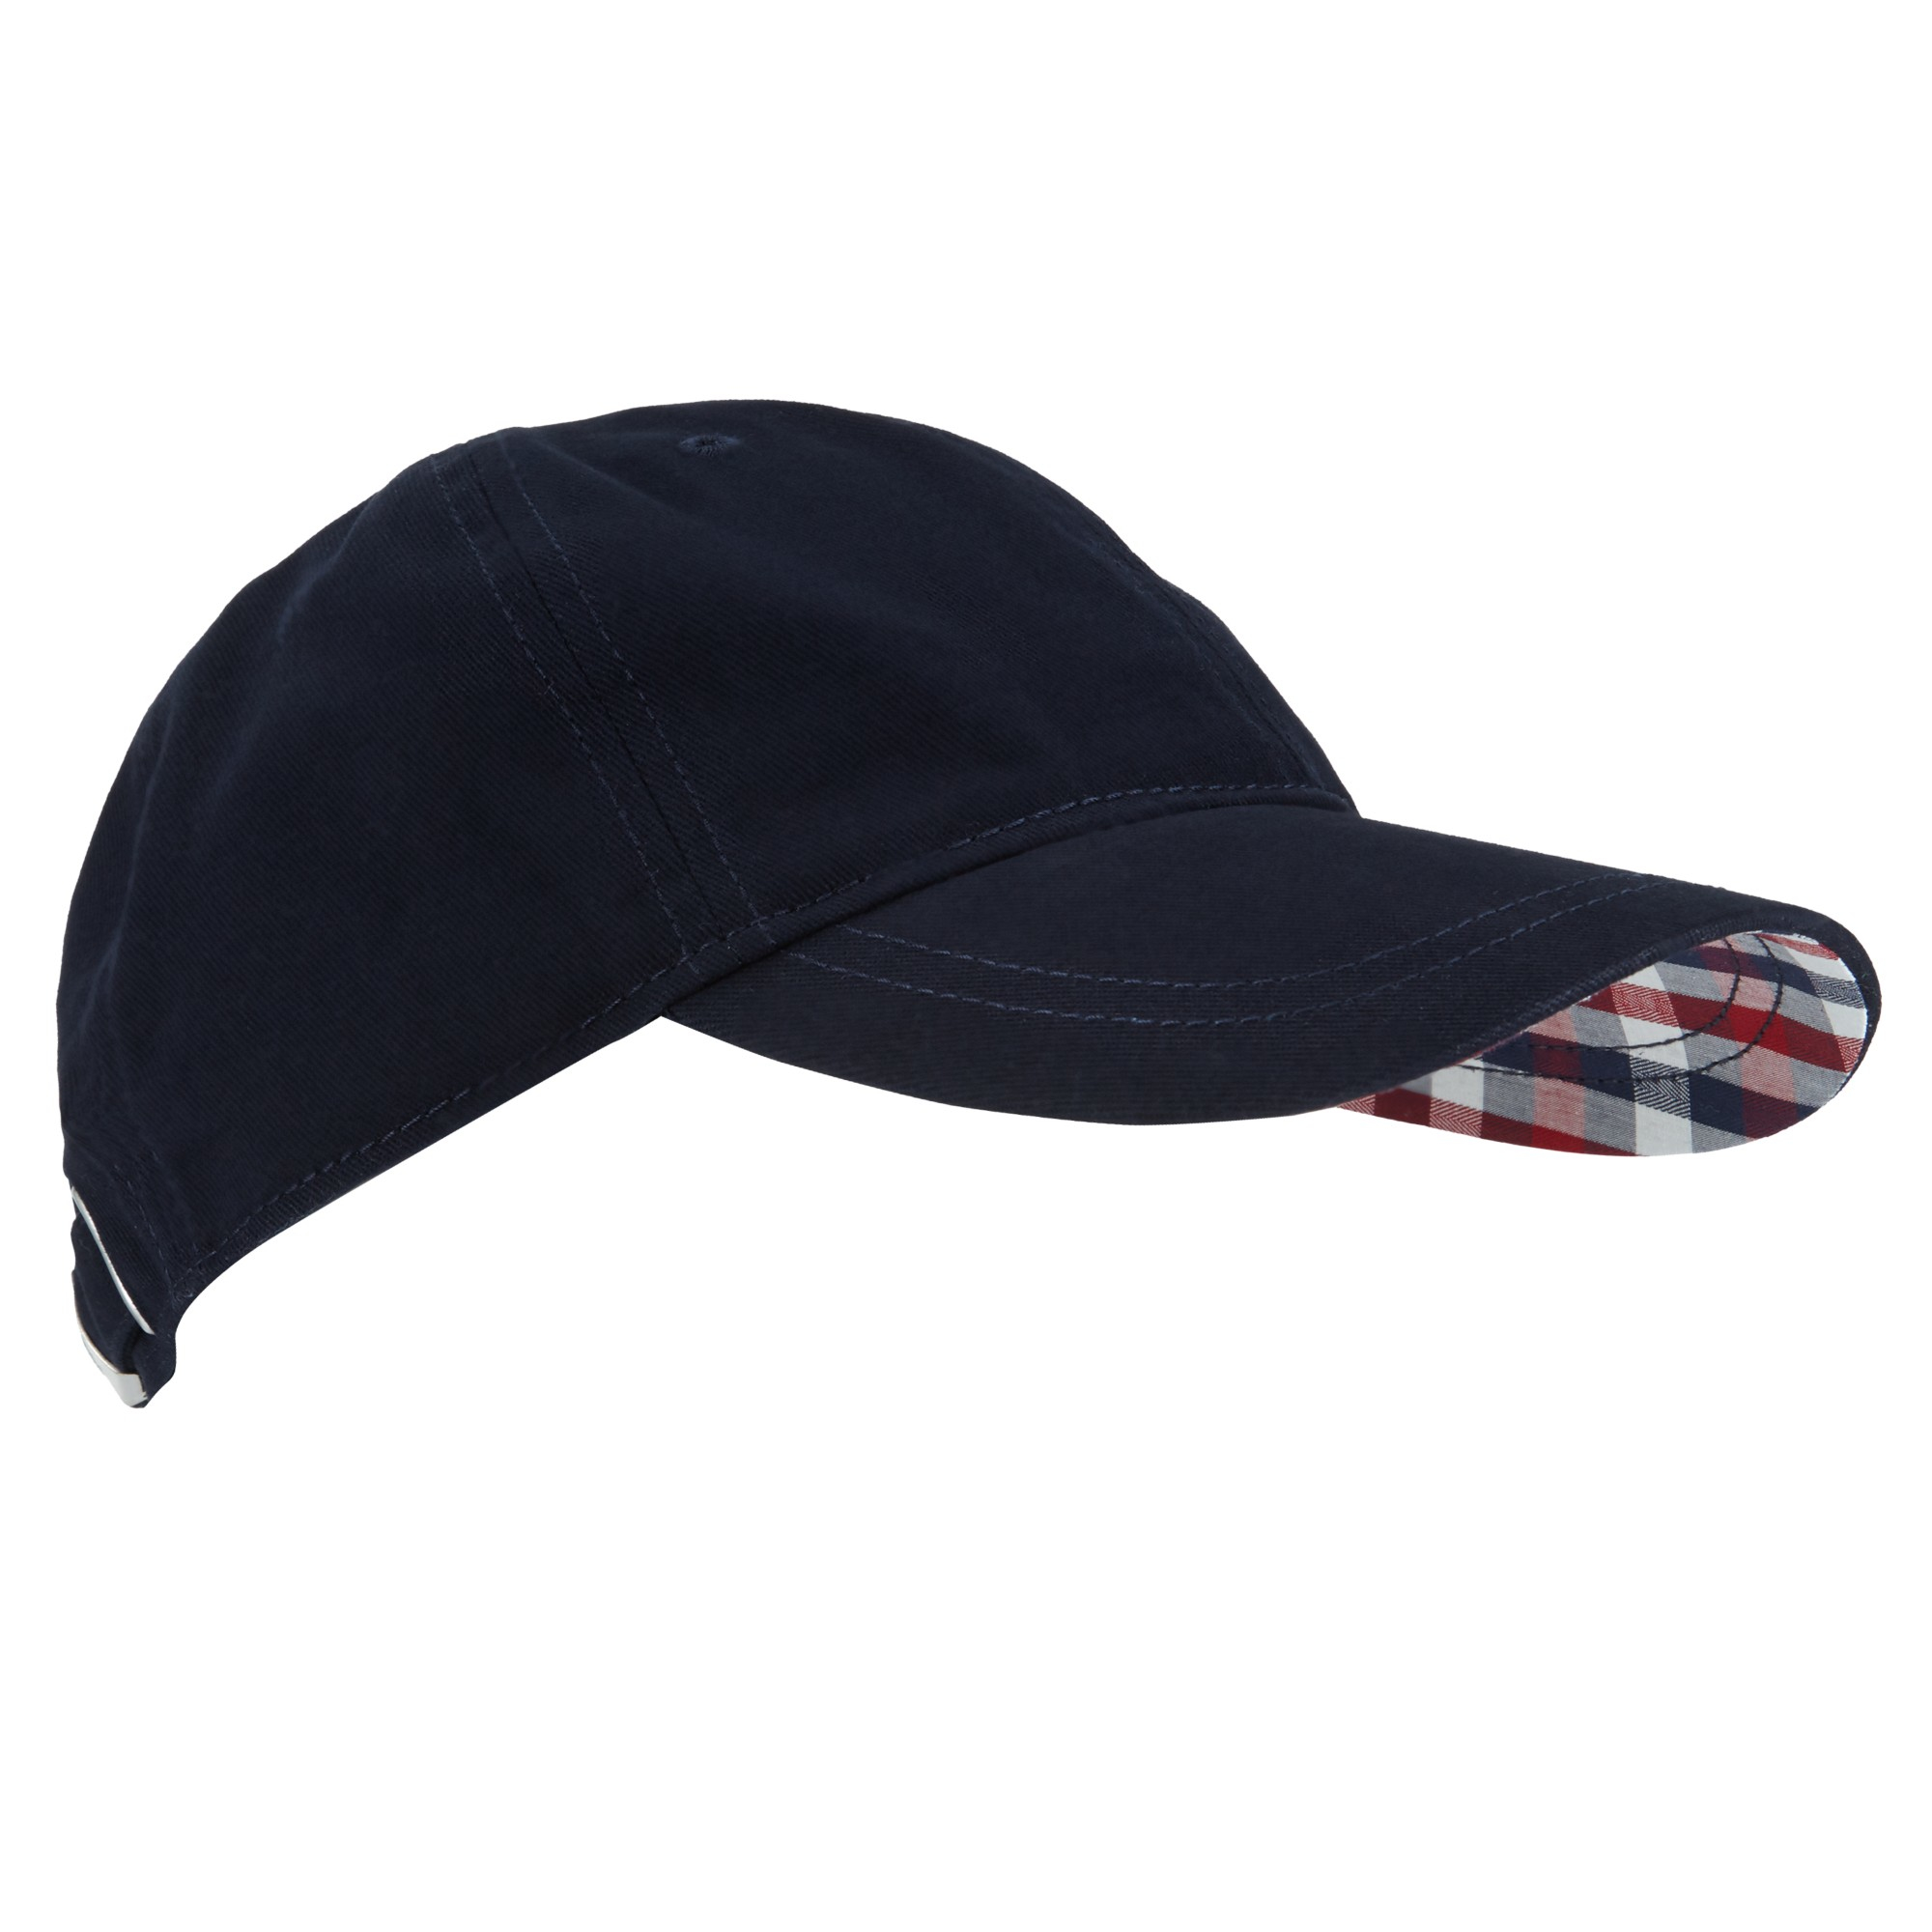 5f59a2f4eec Fred Perry Classic Baseball Cap in Black for Men - Lyst